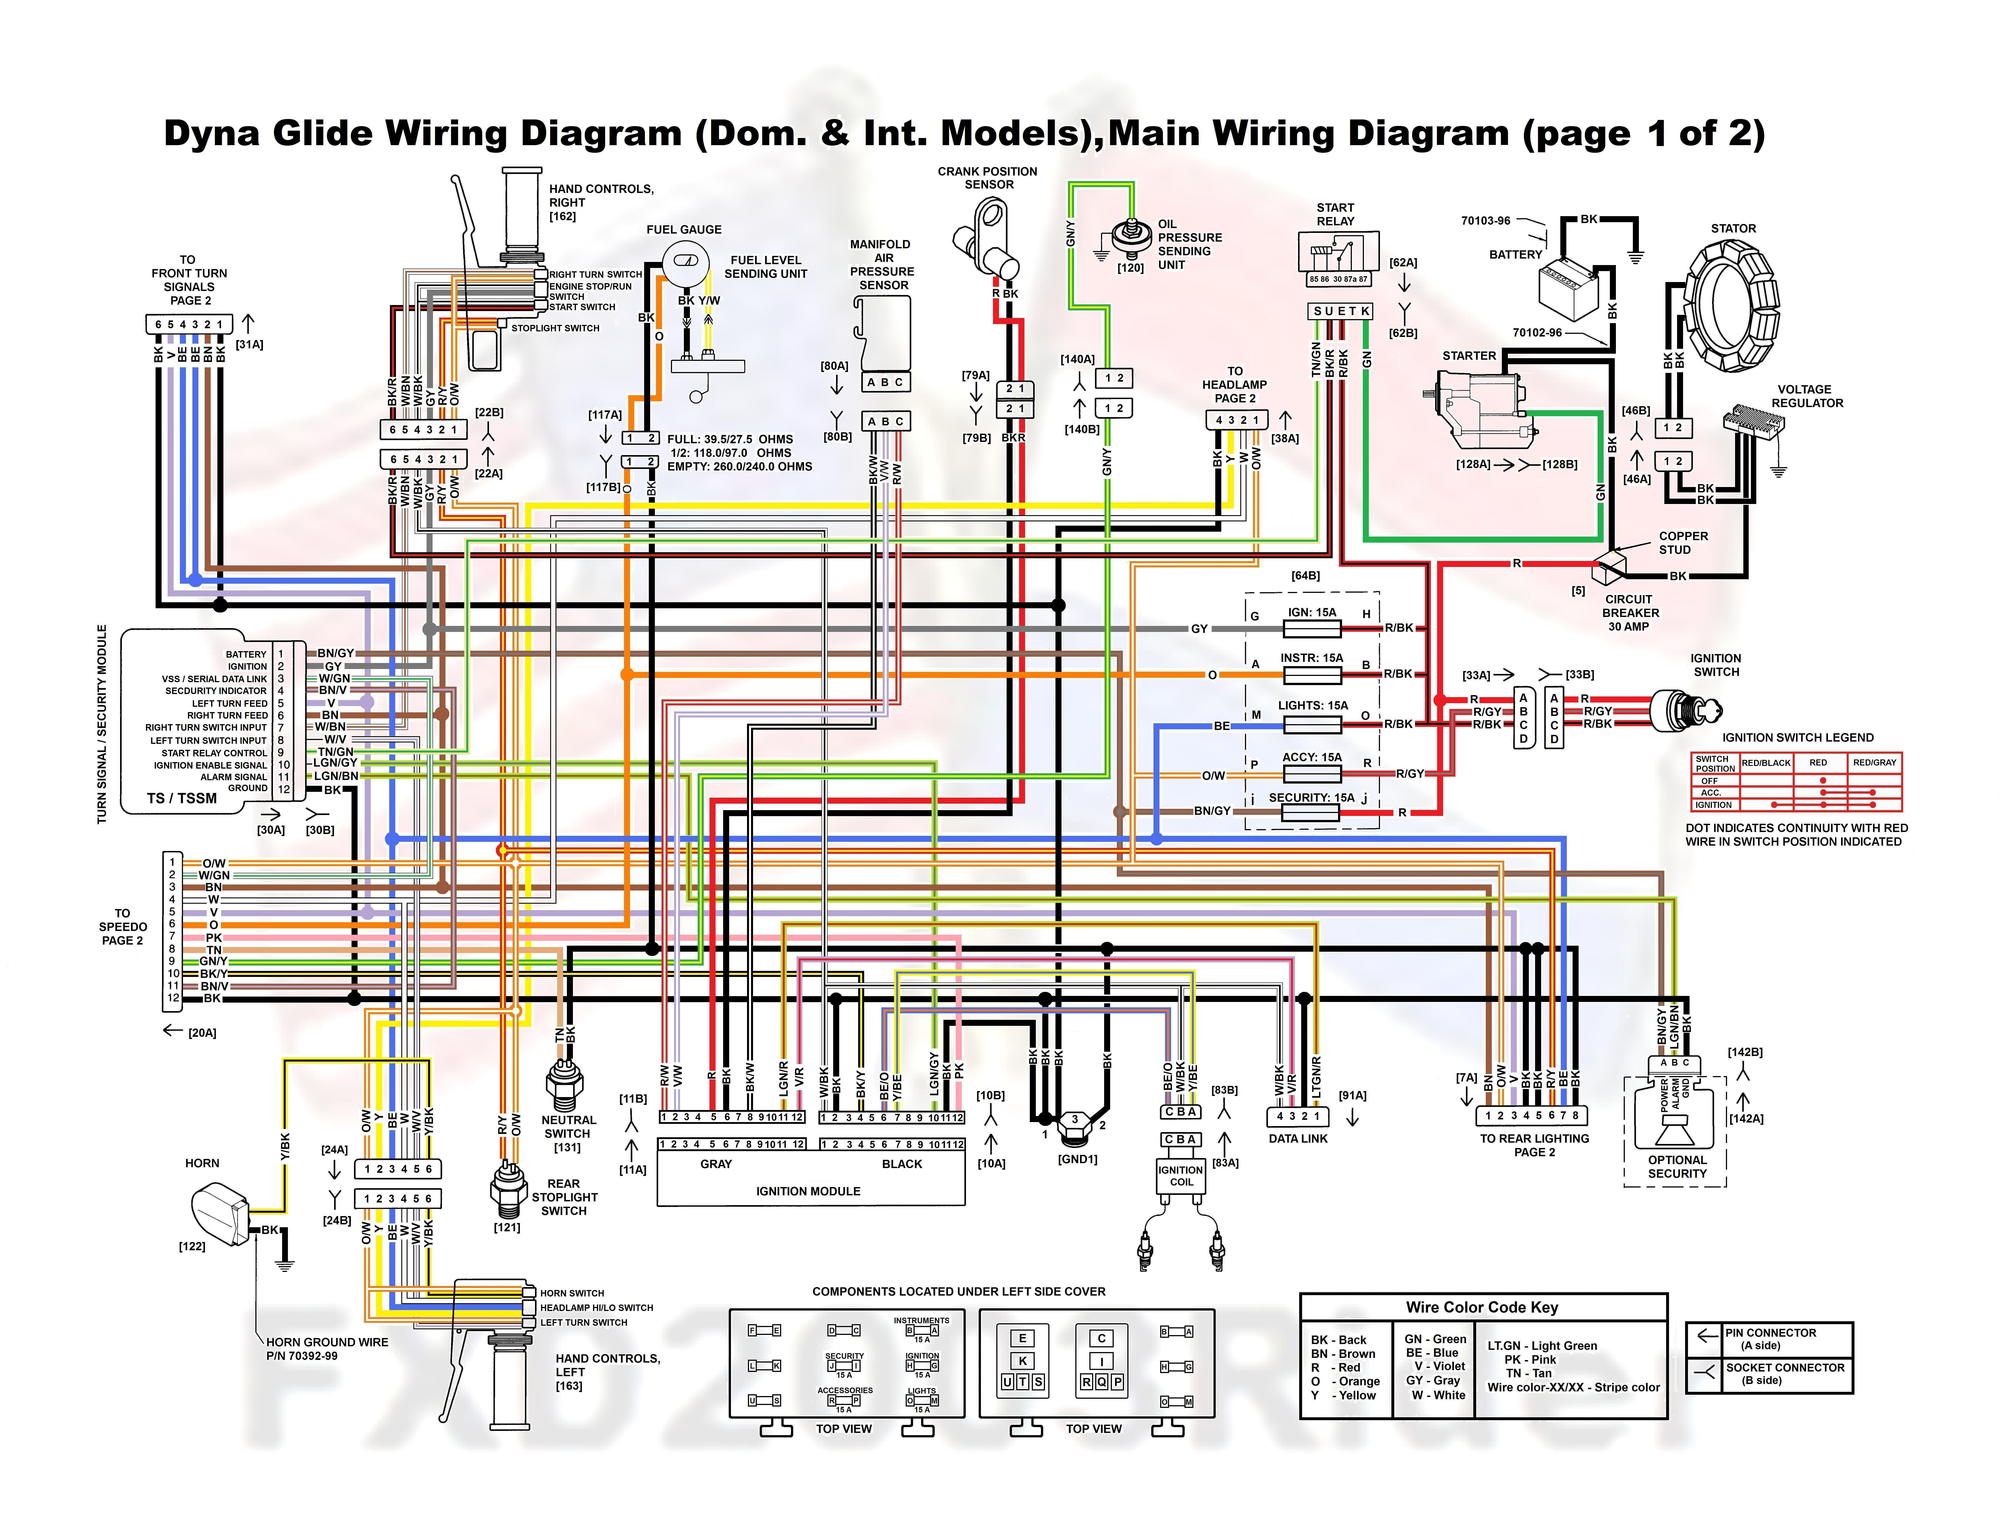 80 _kleur_en_wm_2003_dyna_glide_wiring_diagram_dom_int_models_main_wiring_diagram_page_1_of_2__89aa5bfbfe3bdf104c1e84165cbae702feebd8cc evo 8 wiring diagram wiring diagrams 1990 Softail Wiring Diagram at virtualis.co